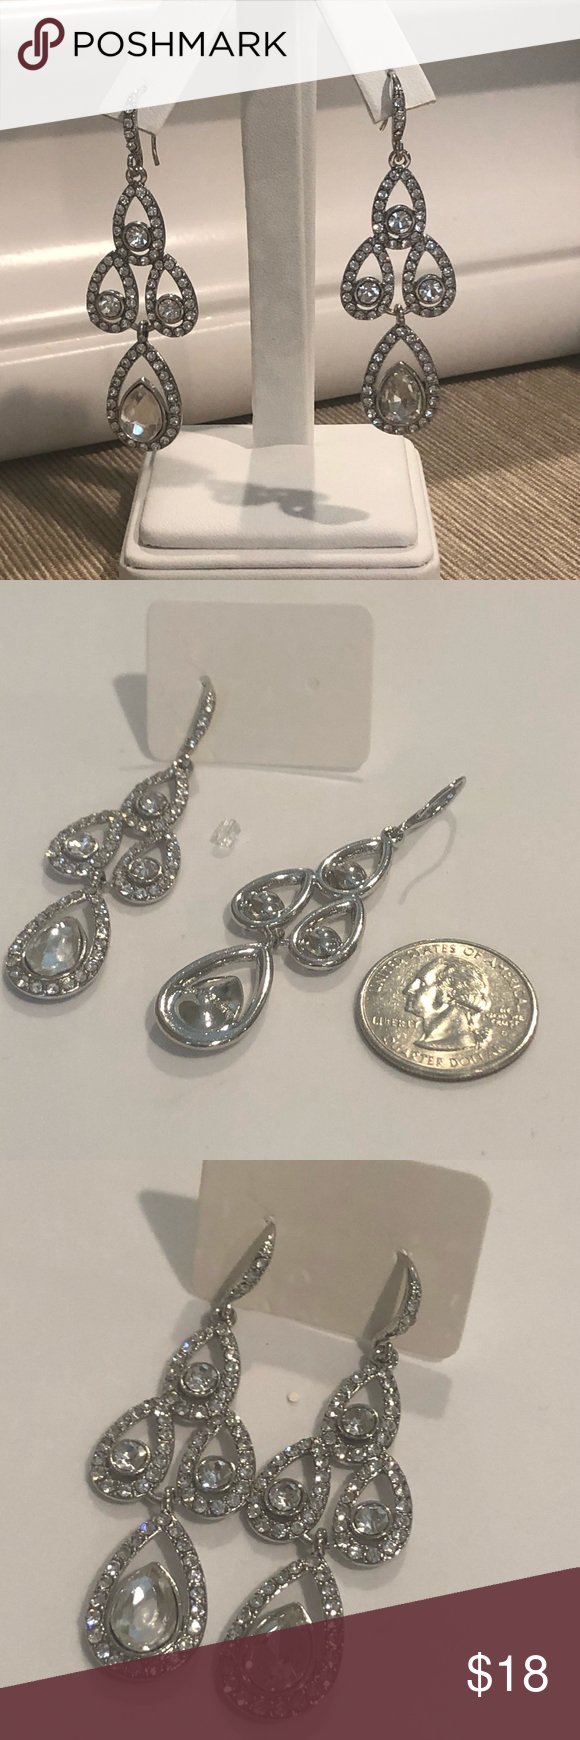 2afdb9ca0 🆕Silver Tone and Crystal/Rhinestone Drop Earrings 🆕Silver Tone and Crystal/Rhinestone  Drop Earrings; BEAUTIFUL for Prom or ANY other special occasion ...